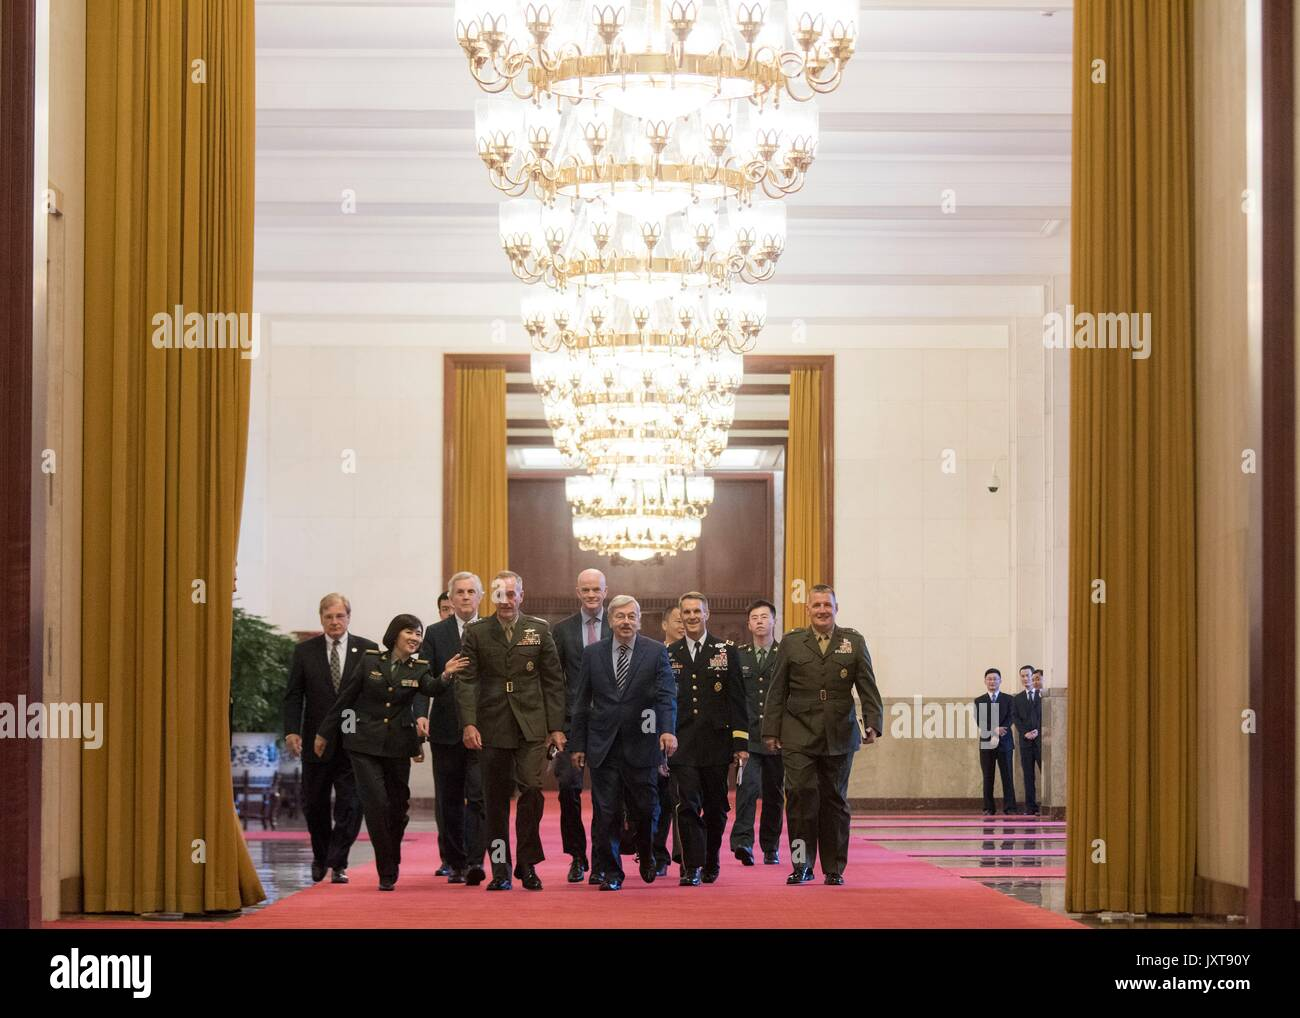 Beijing, China. 17th Aug, 2017. U.S. Chairman of the Joint Chiefs Gen. Joseph Dunford, left, walks with his delegation to meet with Chinese President Xi Jinping at the Great Hall of the People August 17, 2017 in Beijing, China. Dunford is in China to discuss defusing the situation in North Korea. Credit: Planetpix/Alamy Live News - Stock Image